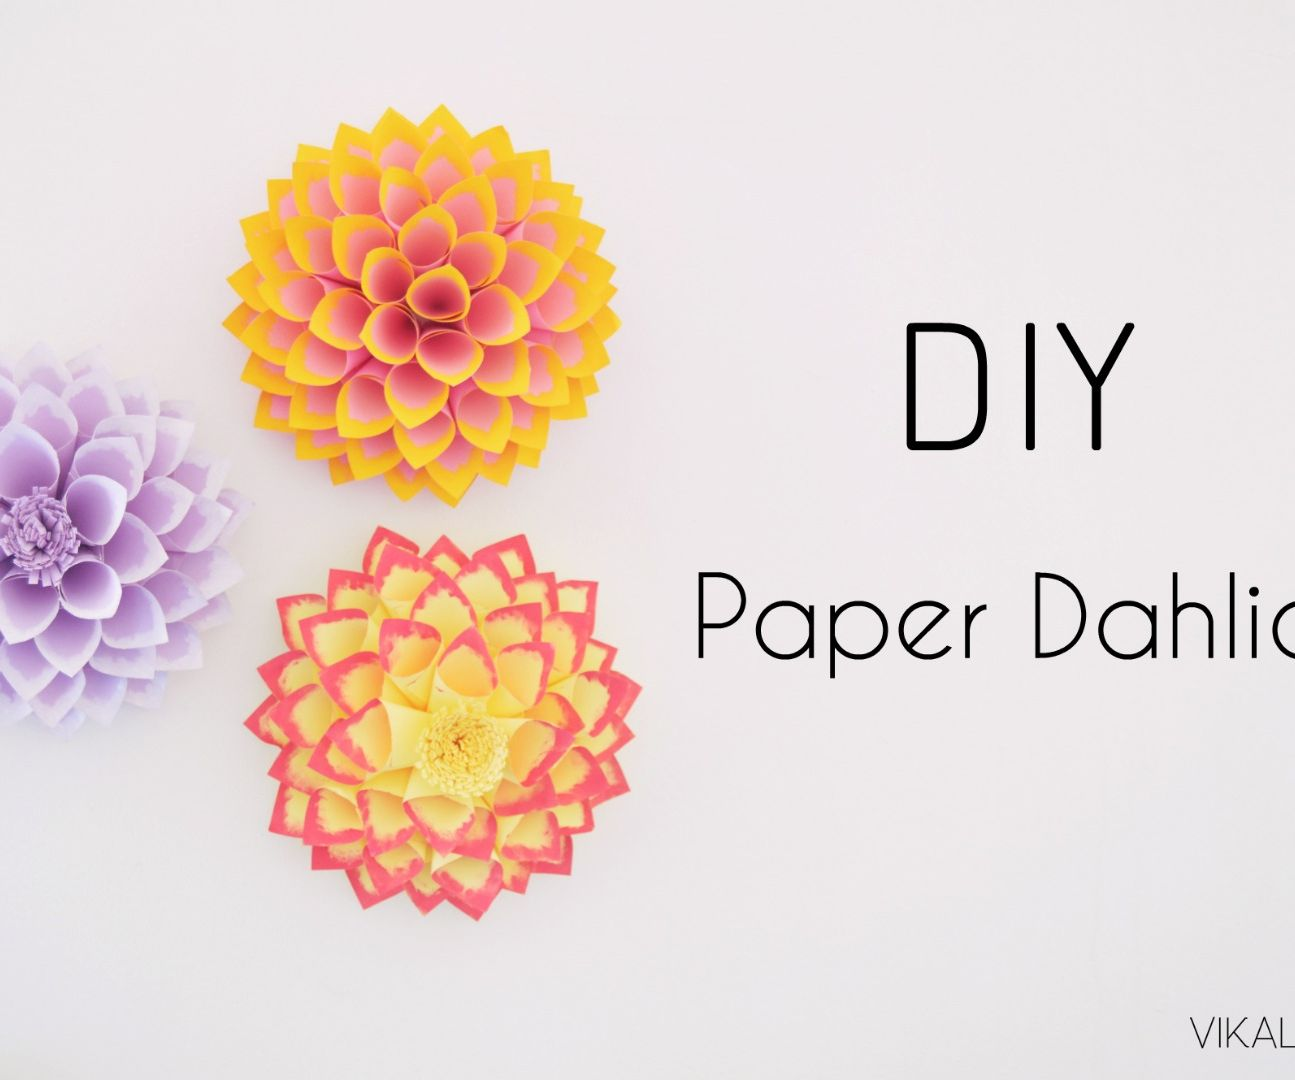 Diy Paper Dahlia 10 Steps With Pictures